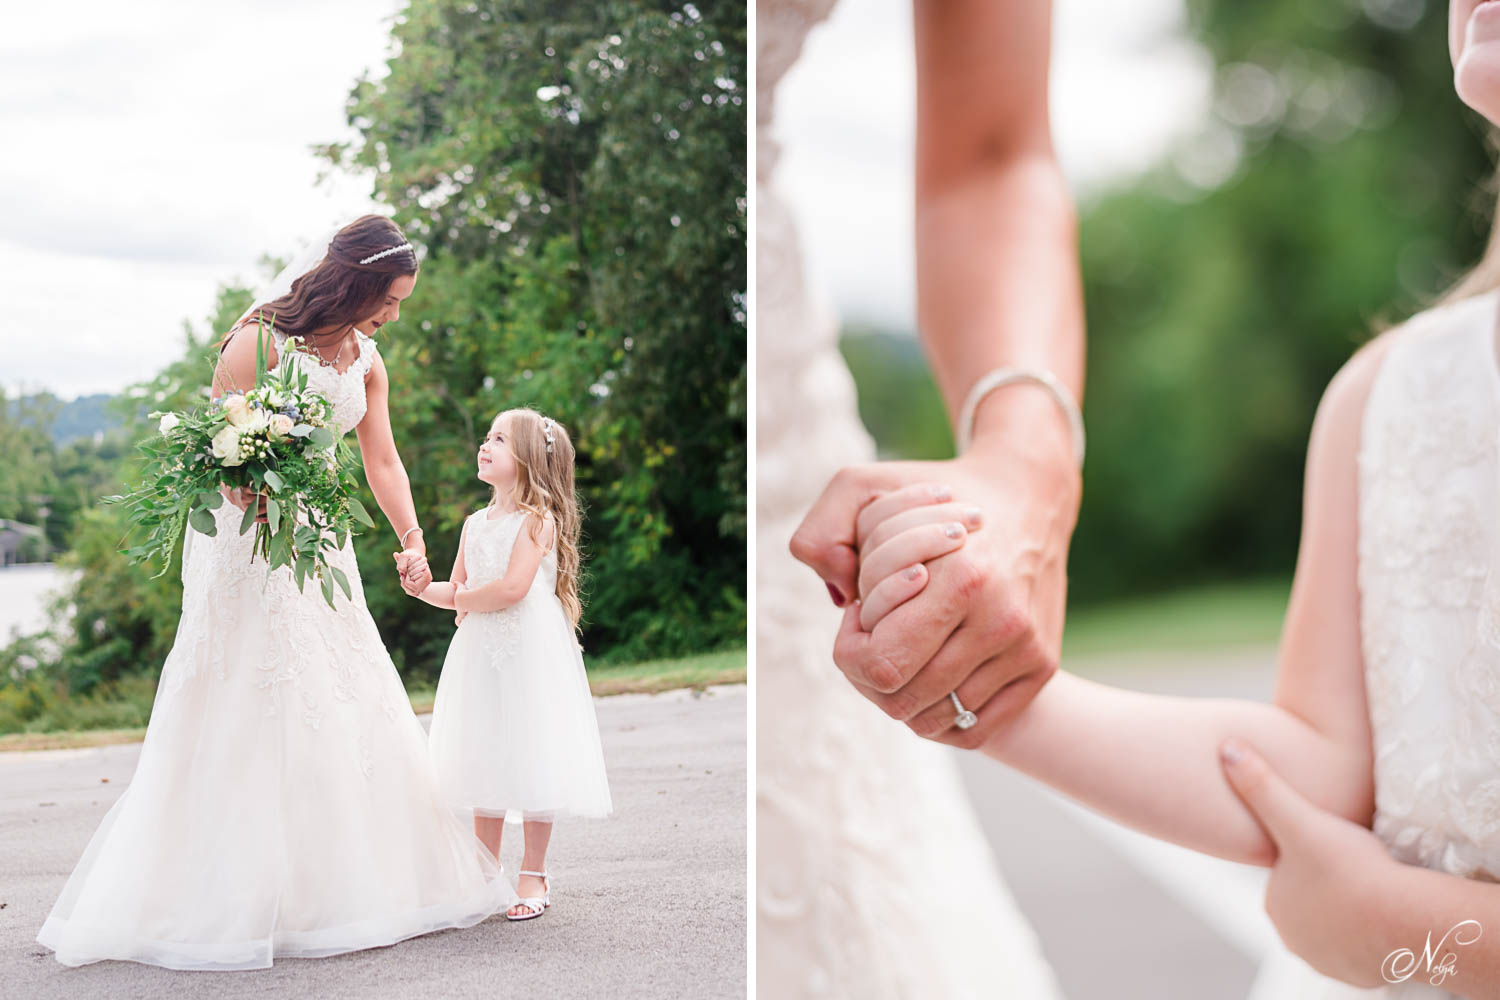 bride talking to flower girl outside in Knoxville TN. And close up of adult hand holding a child's hand